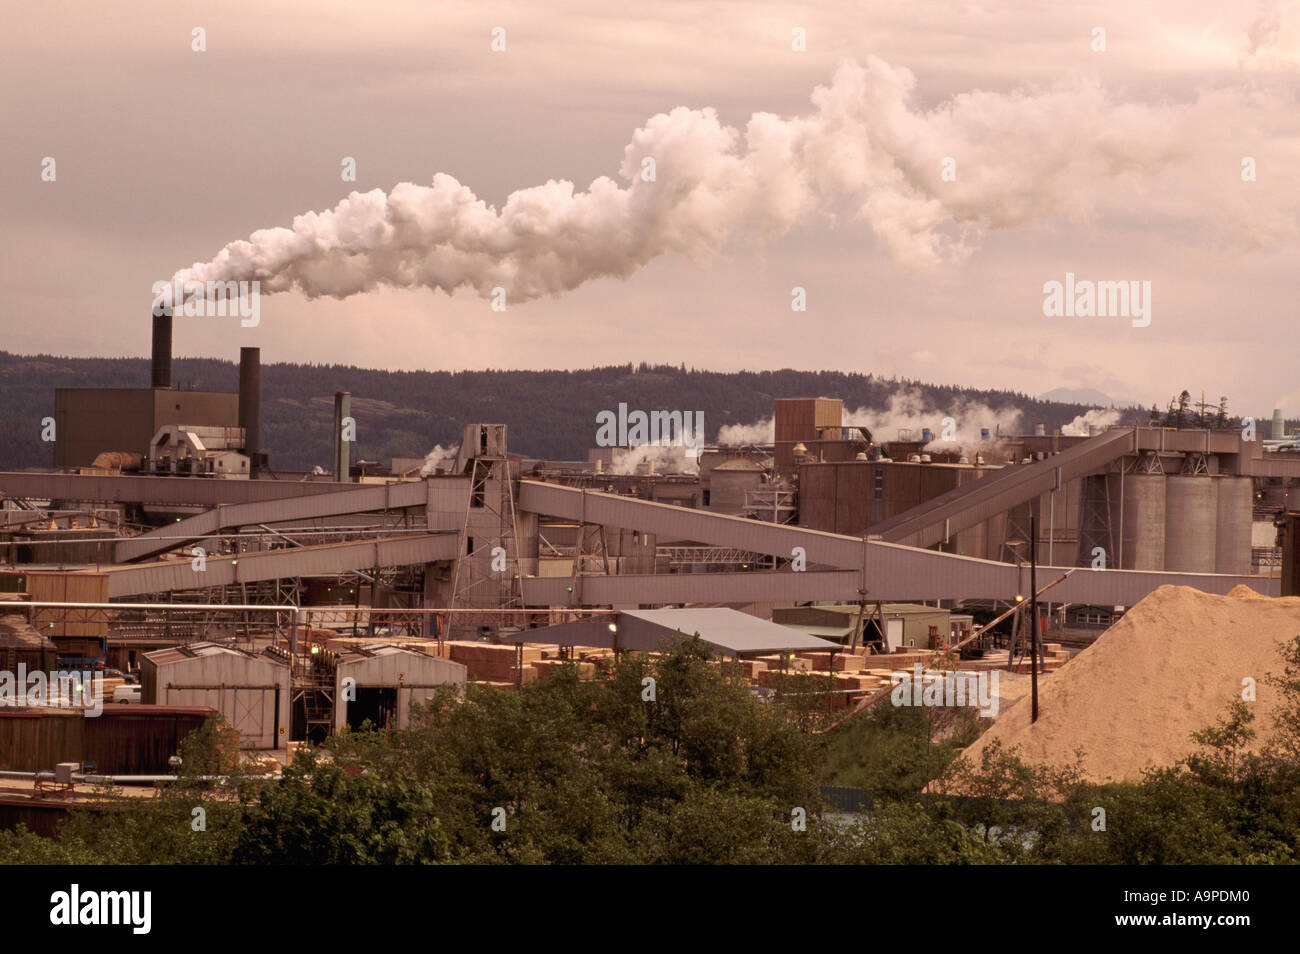 Campbell River, Bc, Vancouver Island, British Columbia, Canada  Elk Falls  Pulp & Paper Mill, Air Pollution And Emissions